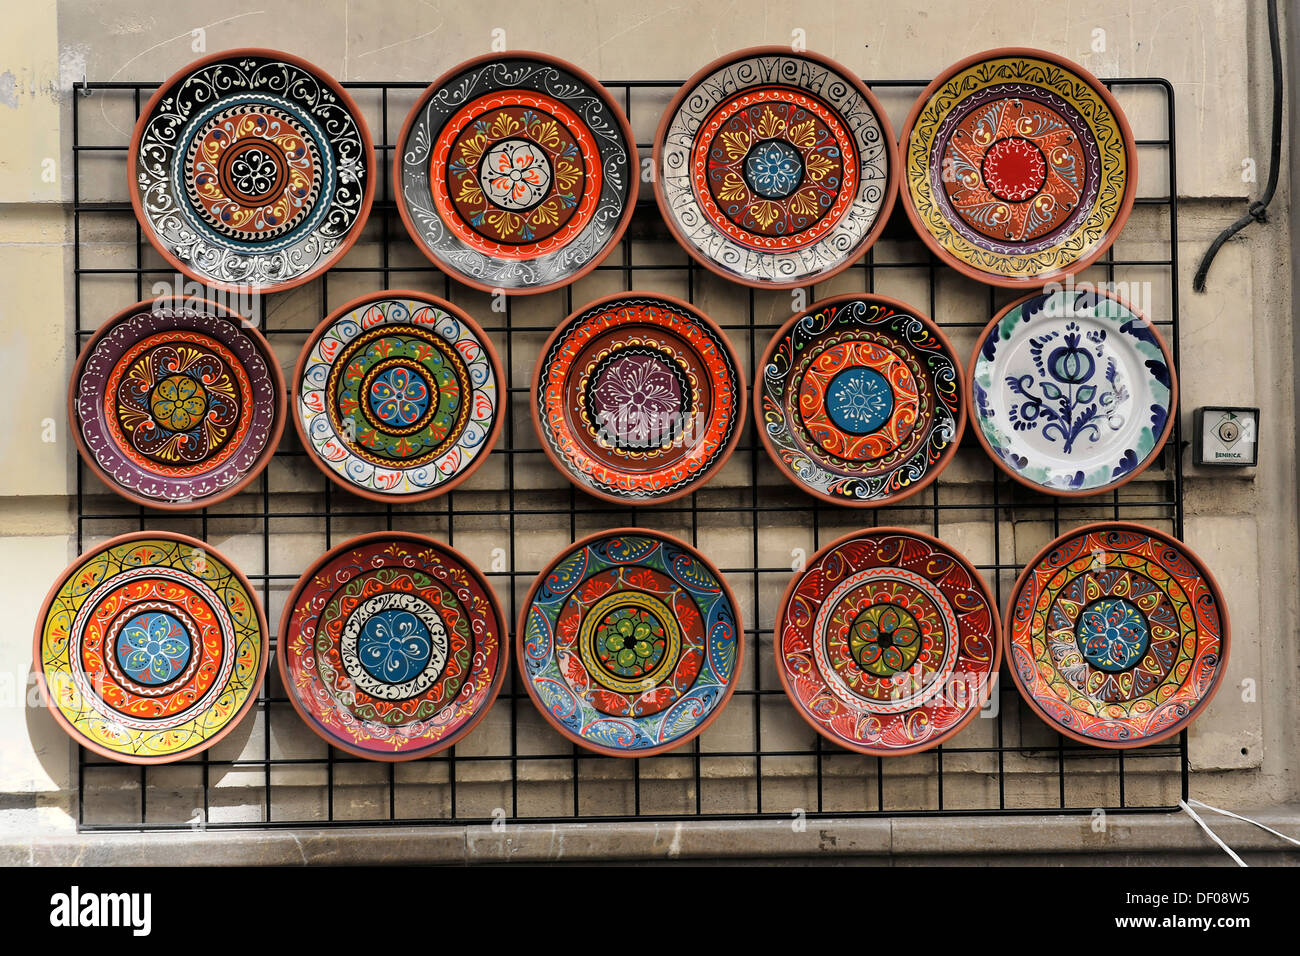 Colourful ceramic plates souvenirs in a gift shop Andalucia Spain Europe & Colourful ceramic plates souvenirs in a gift shop Andalucia Spain ...